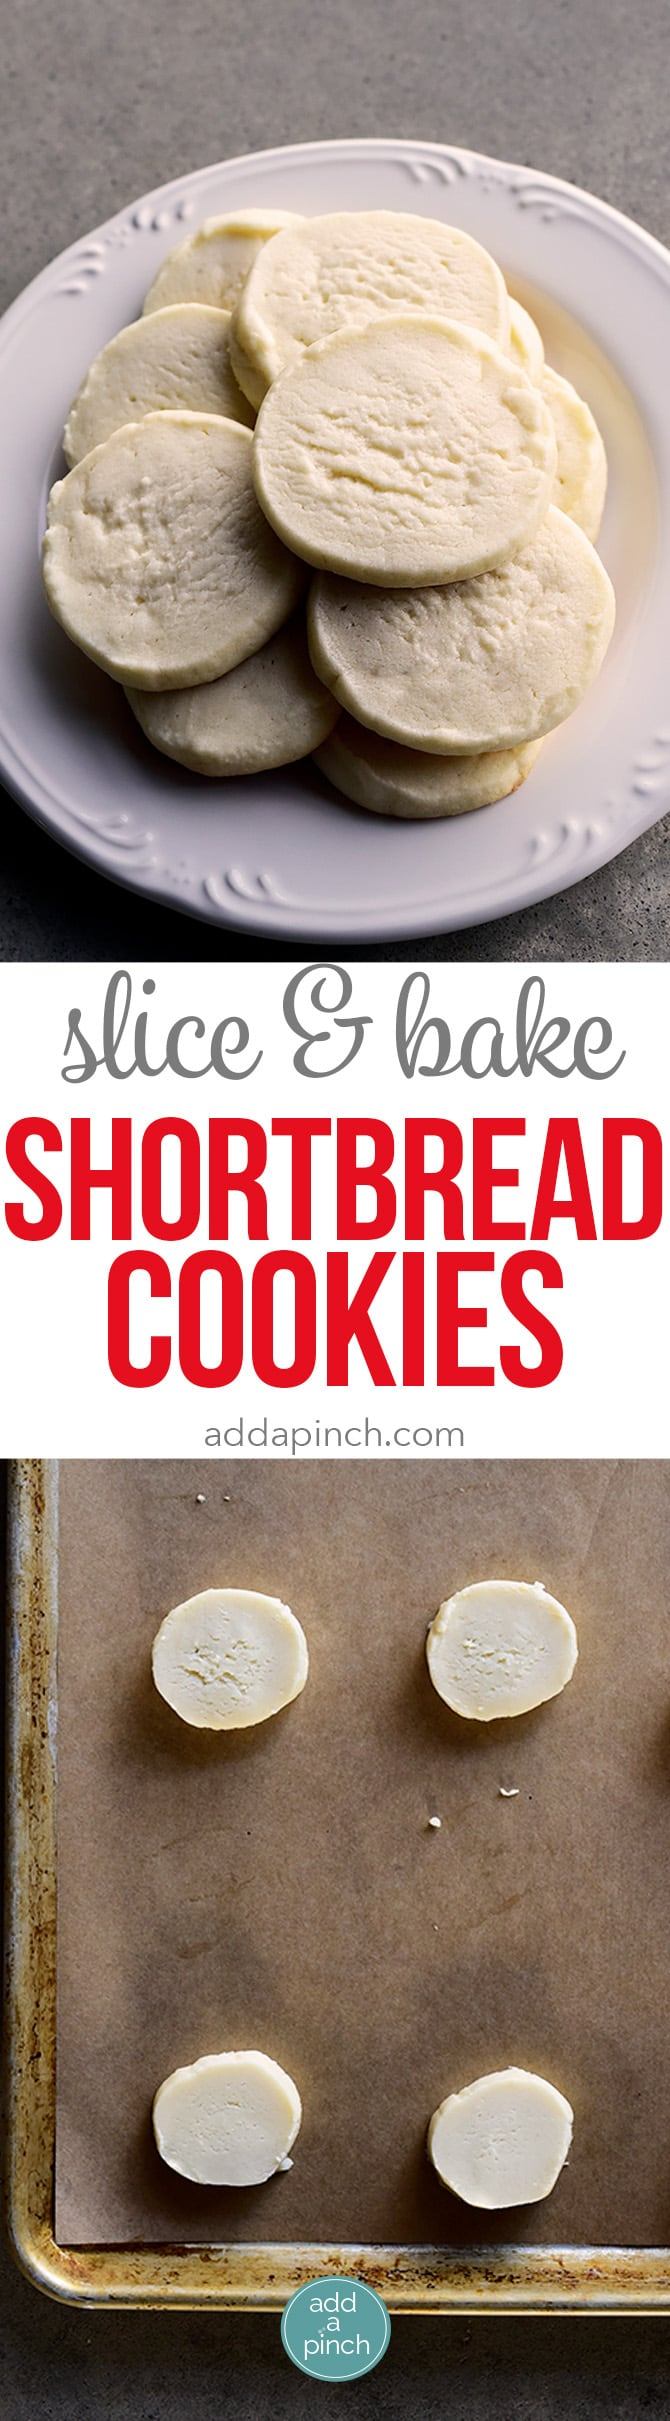 slice-bake-shortbread-cookies-recipe-collage - Add a Pinch